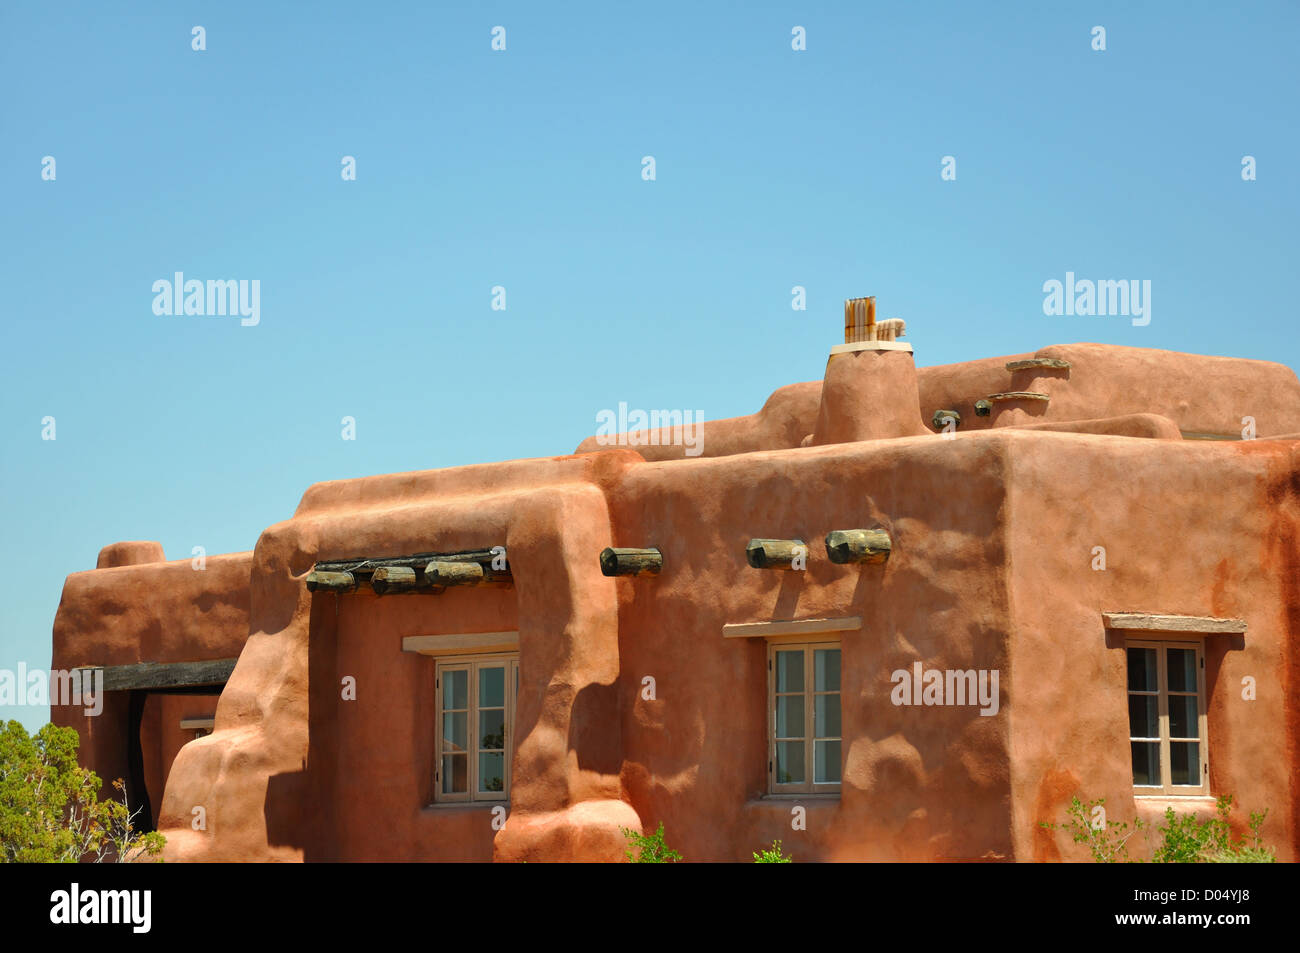 Maison de style adobe, Arizona, USA Photo Stock